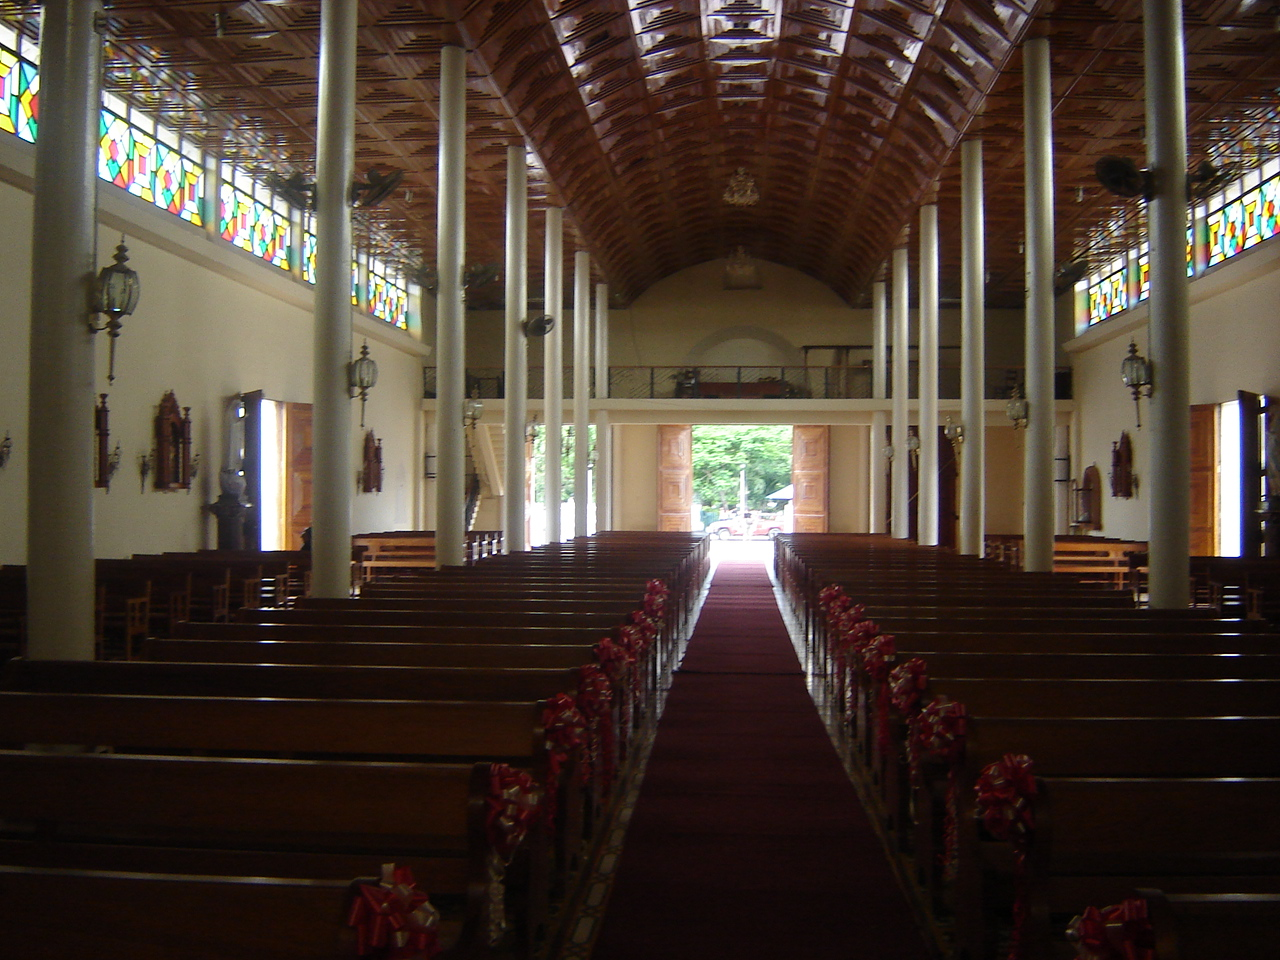 Inside the Estelí cathedral